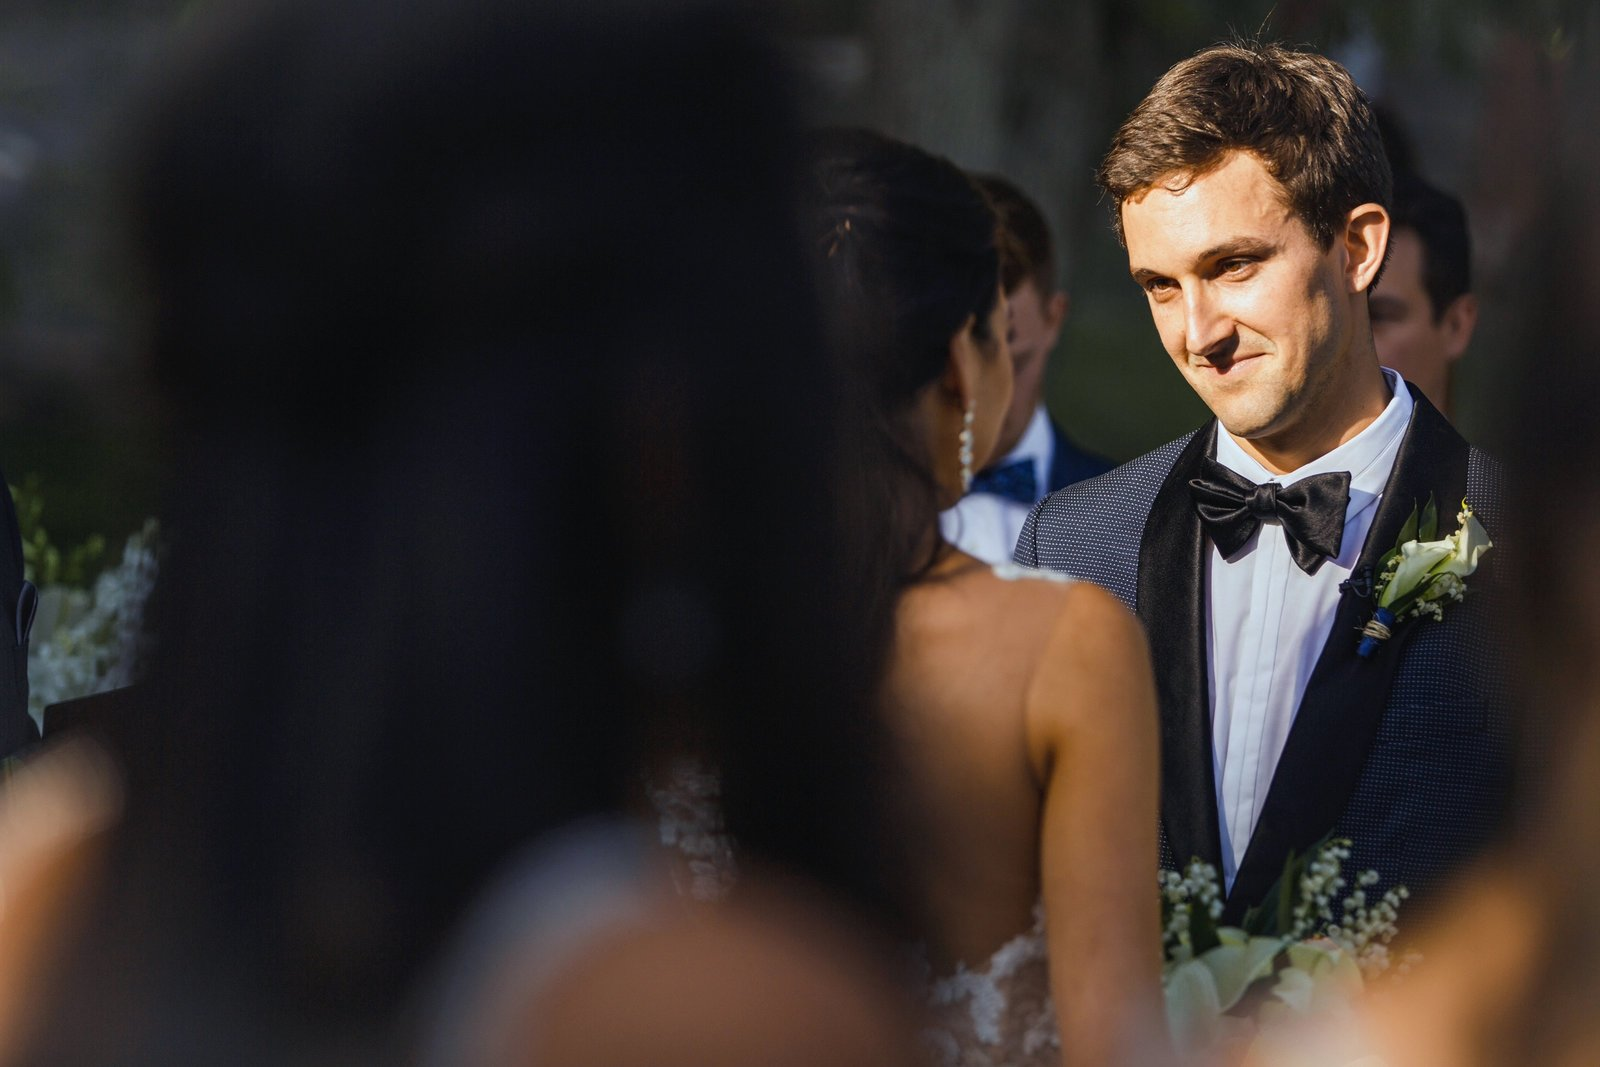 groom looking into grooms eyes during wedding ceremony at the newhall mansion